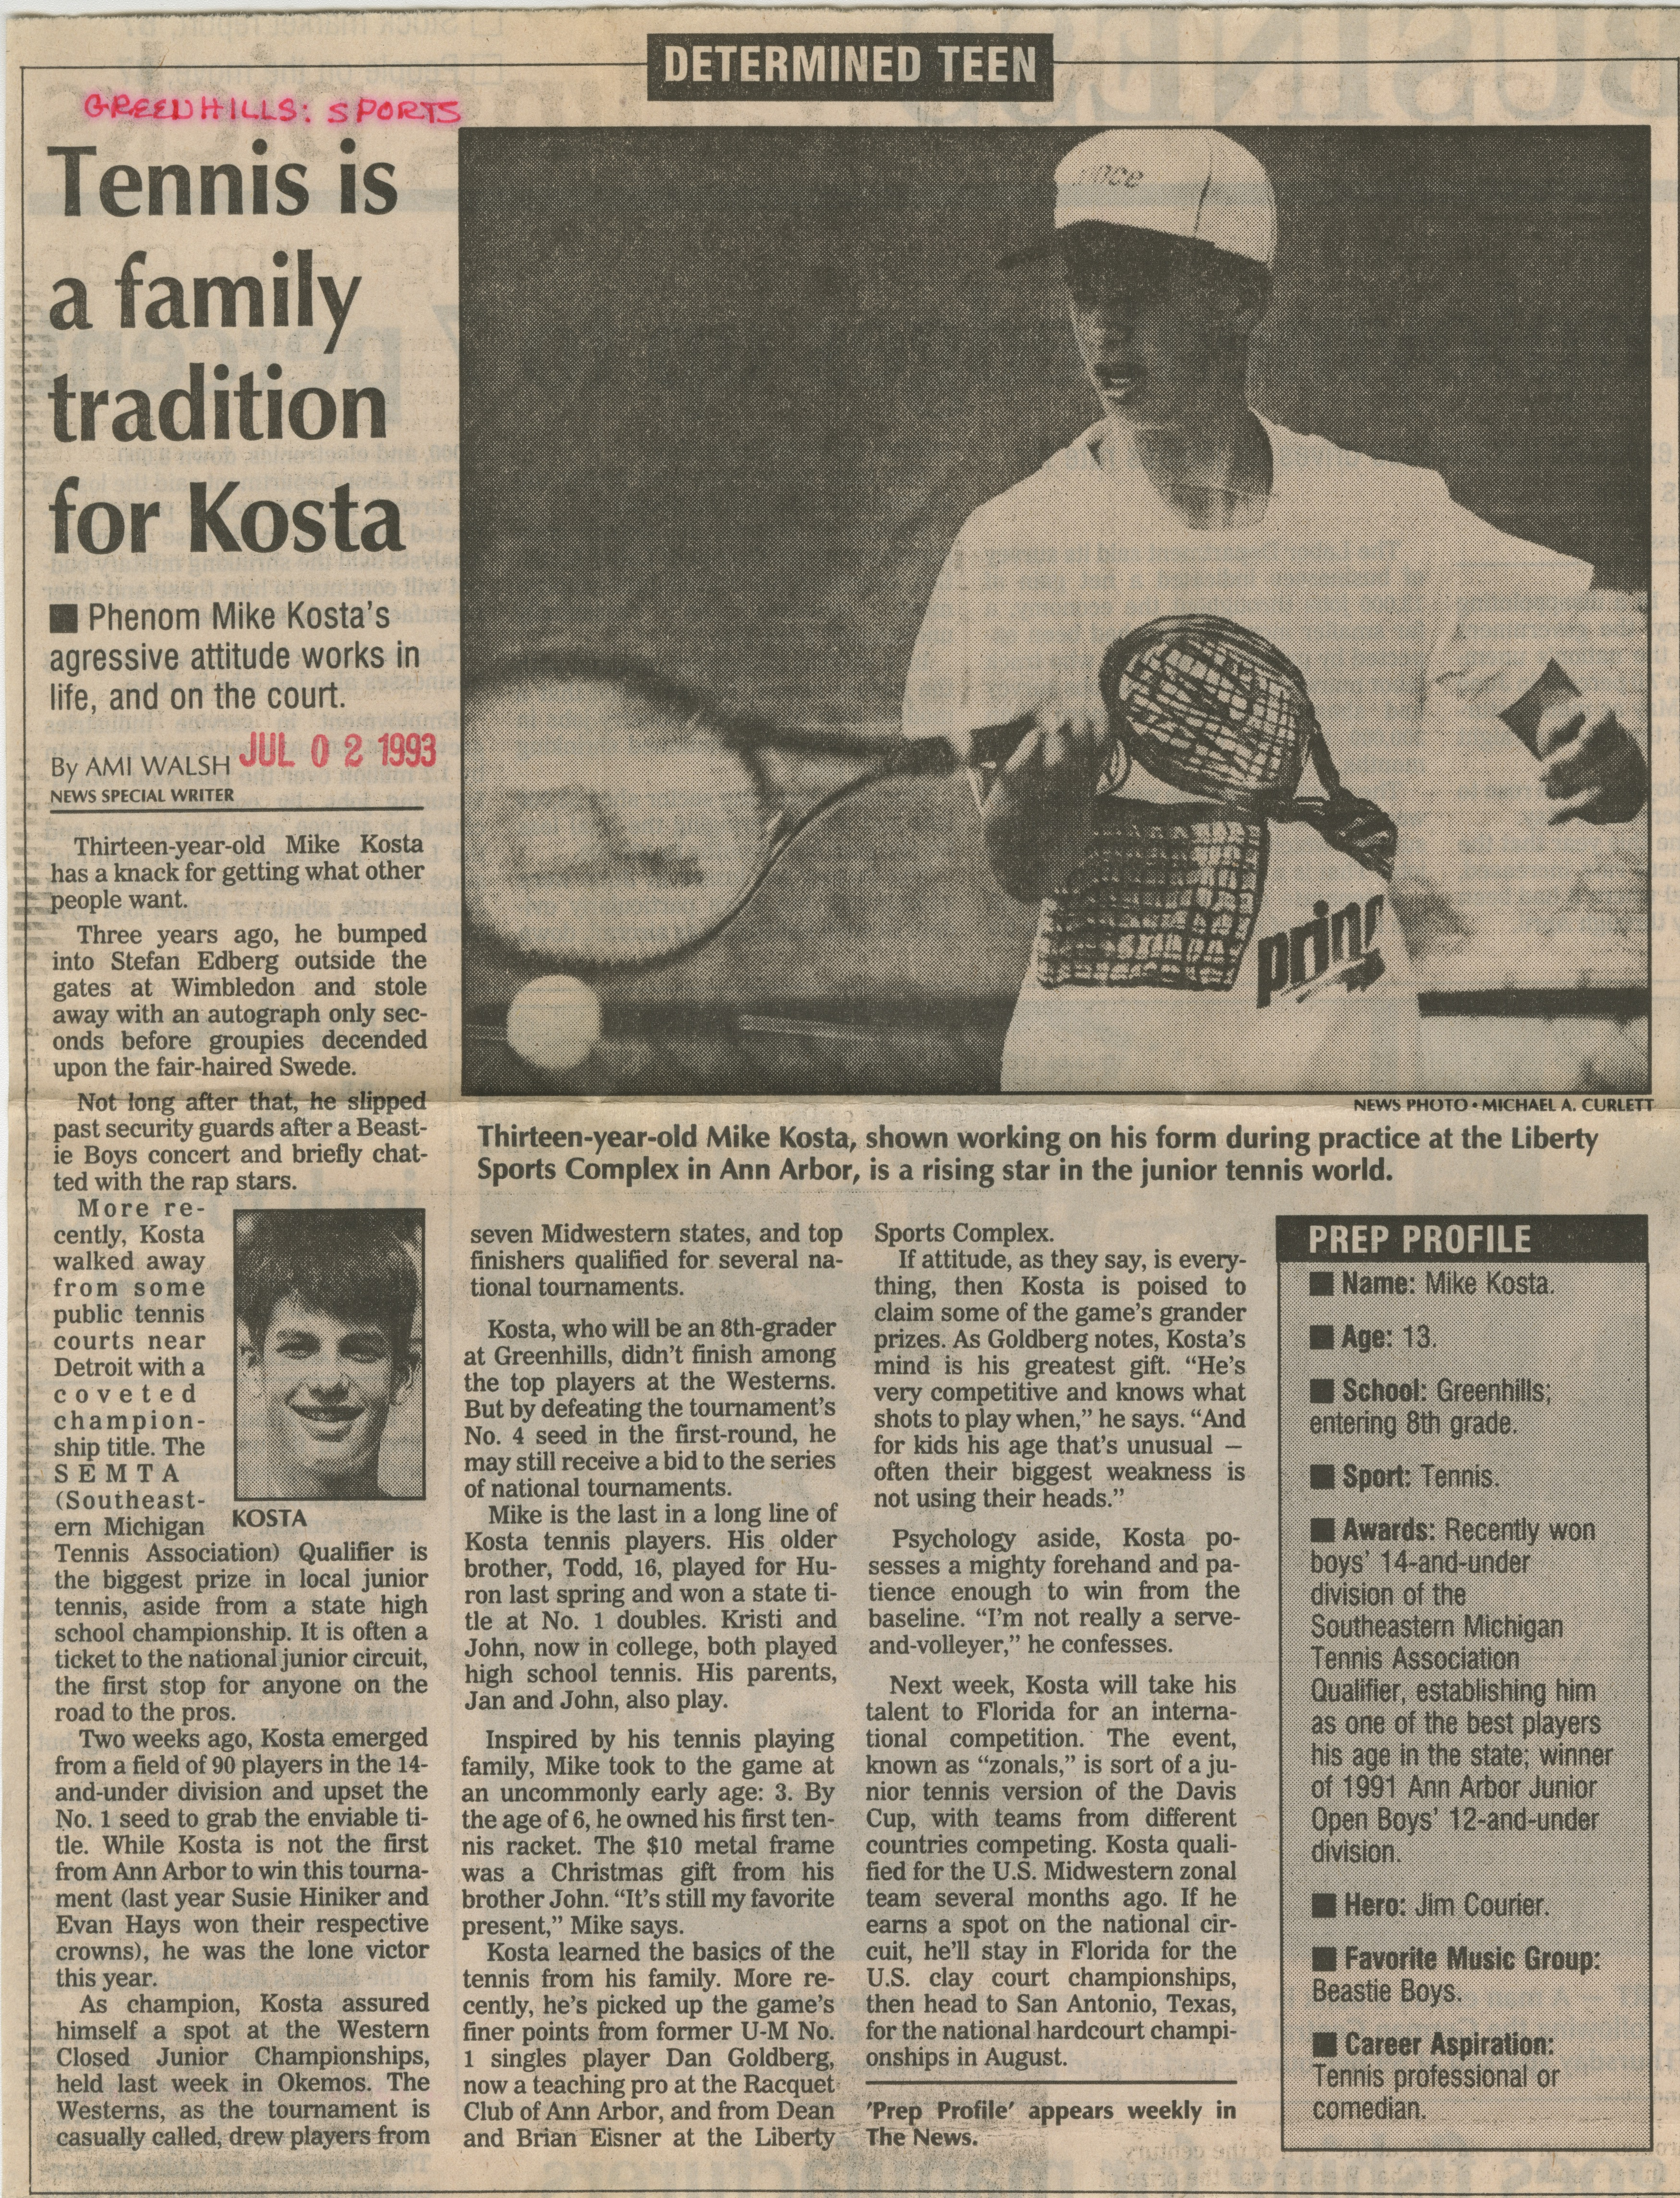 Tennis Is A Family Tradition For Kosta image